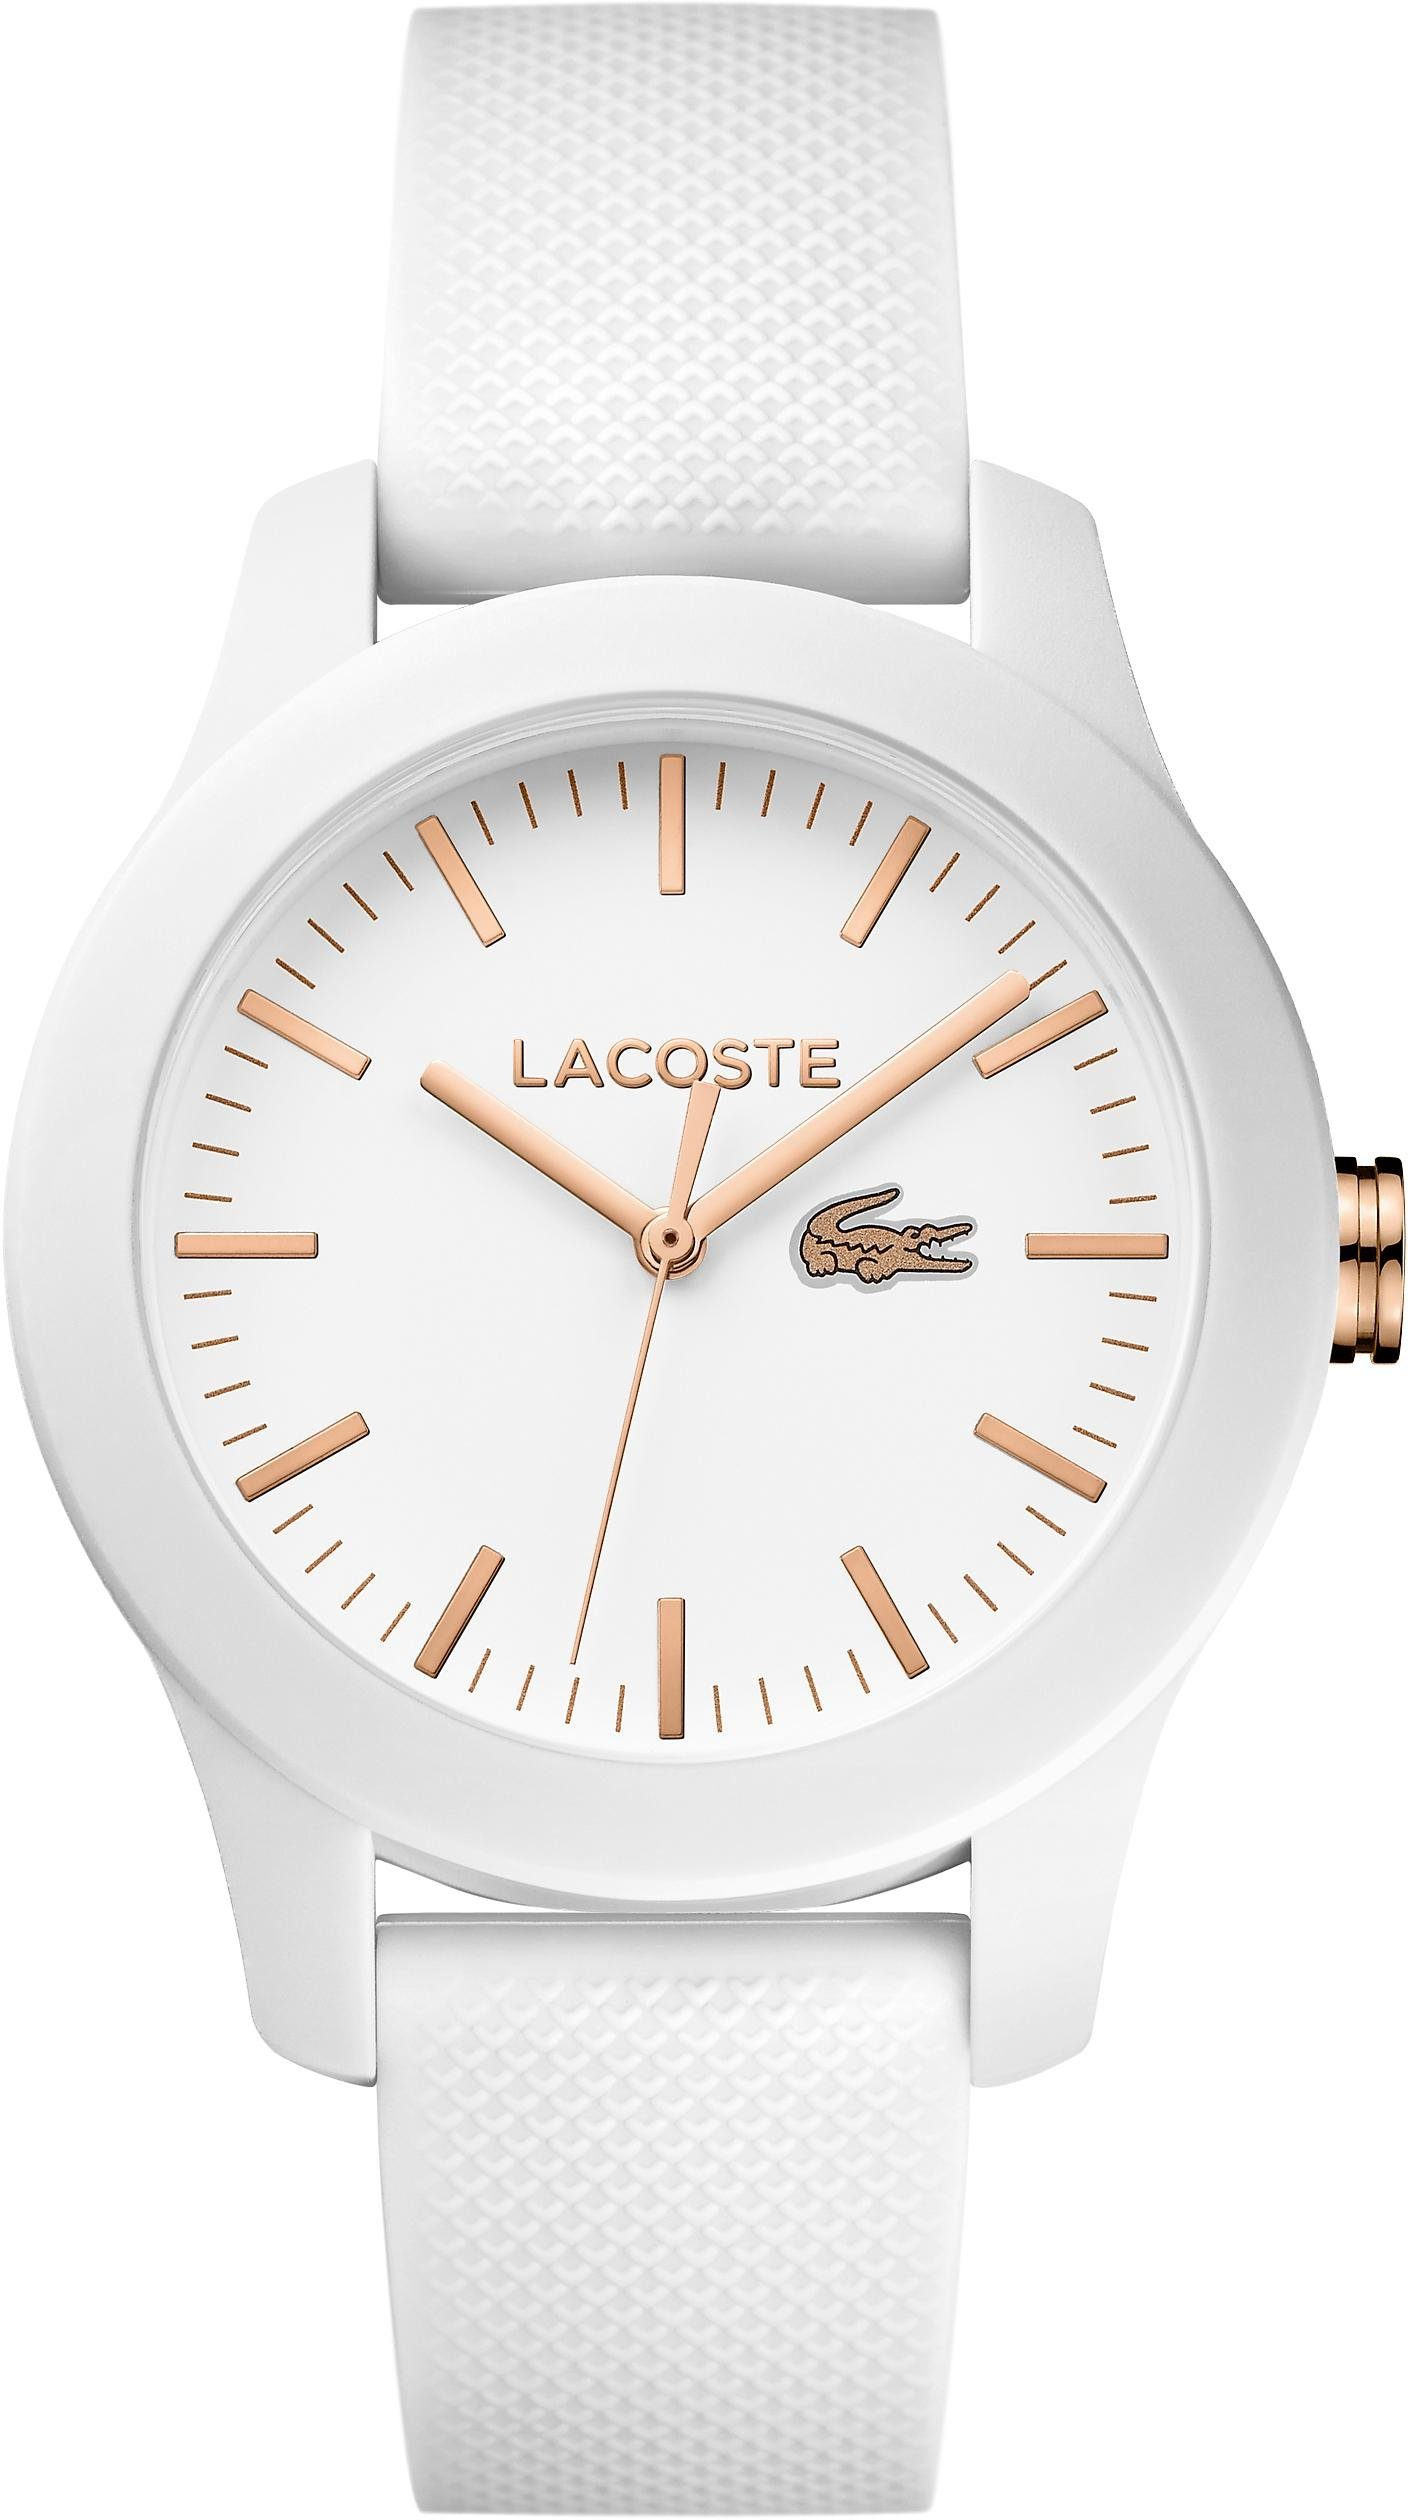 Lacoste Quarzuhr »LACOSTE.12.12 LADIES, 2000960«